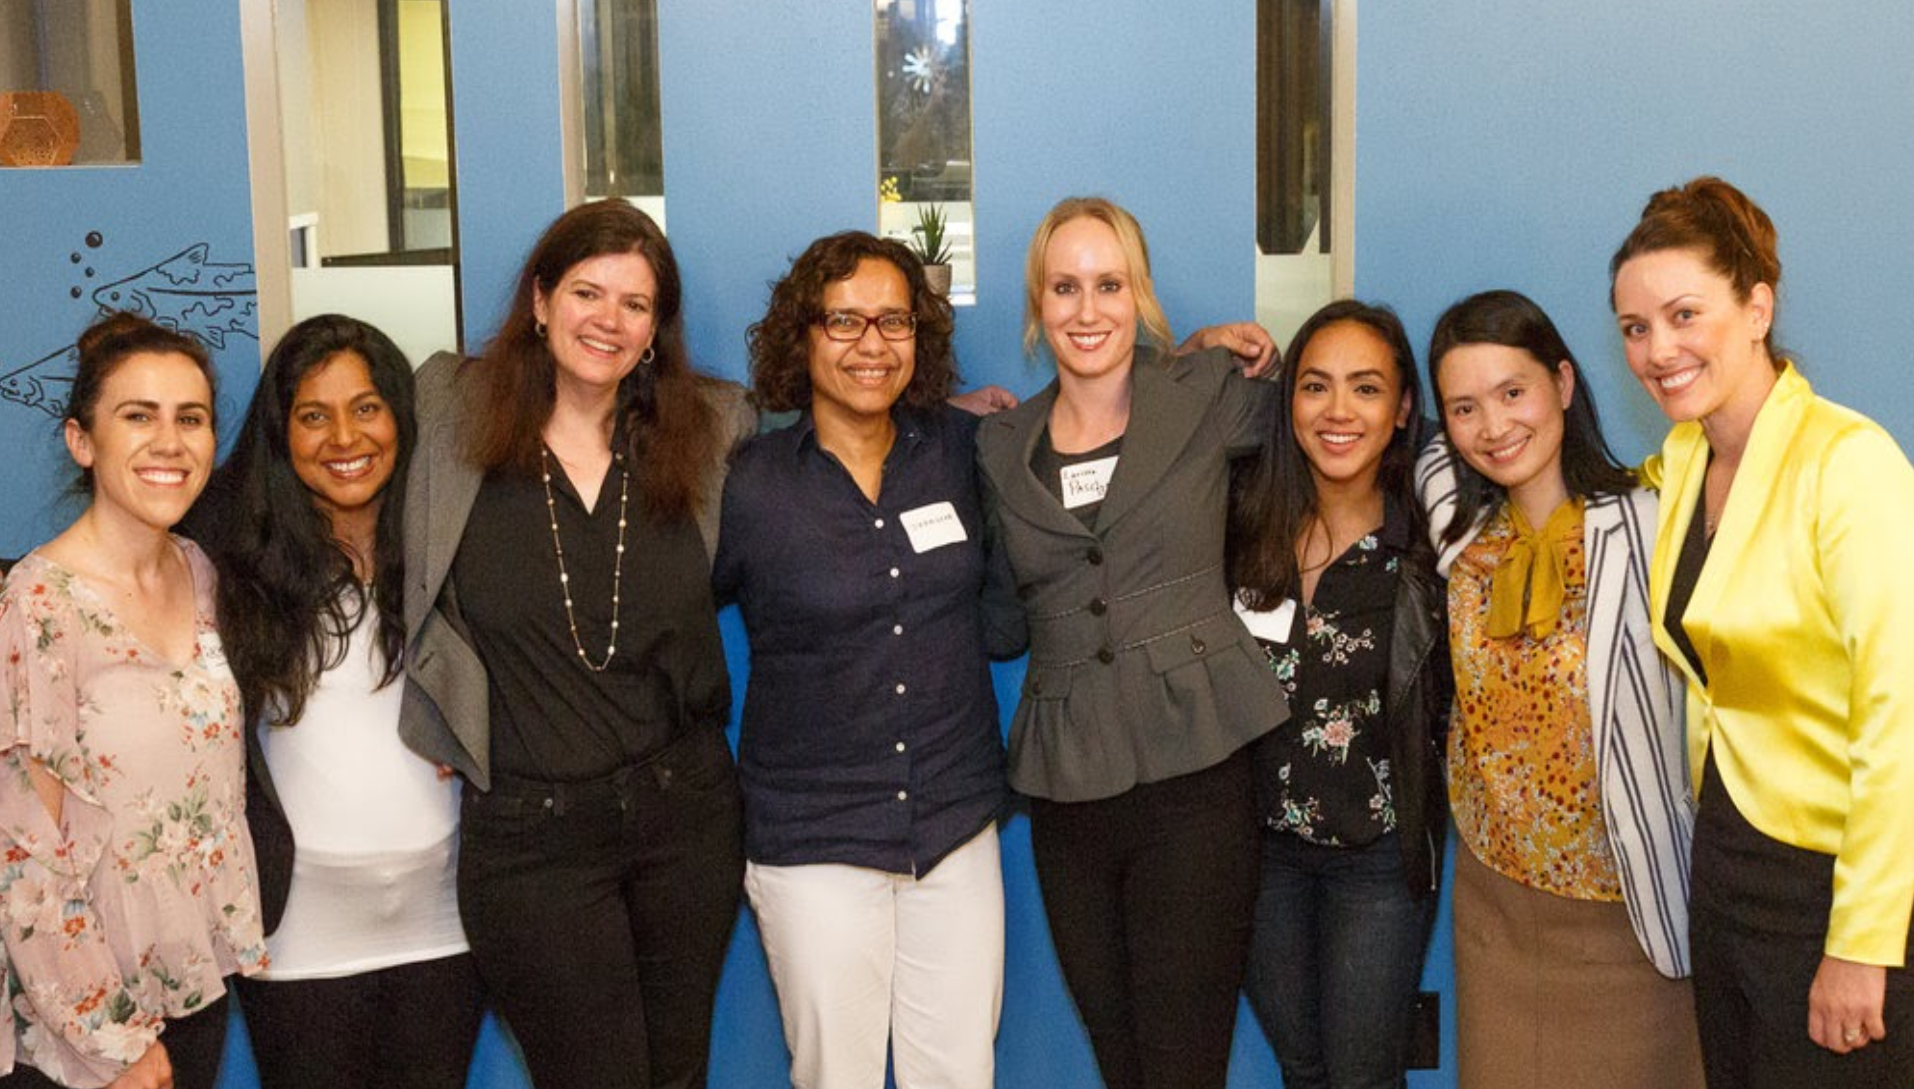 Founder Institute, WomenTech Network team up to bridge gap between Europe and Silicon Valley for female founders